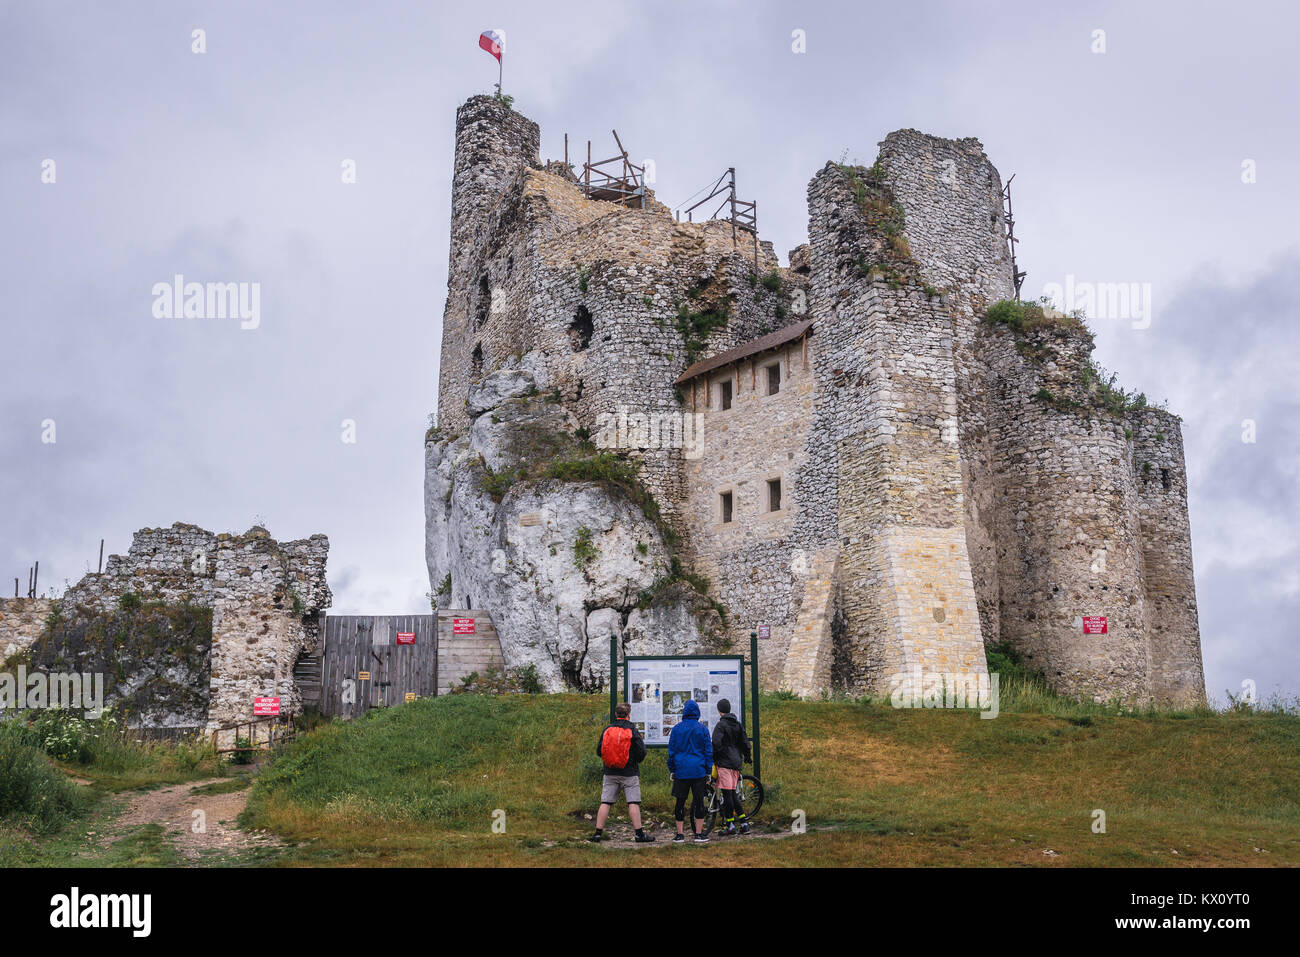 Ruins Of 14th Century Castle In Mirow Village Part The Eagles Nests System Silesian Voivodeship Southern Poland